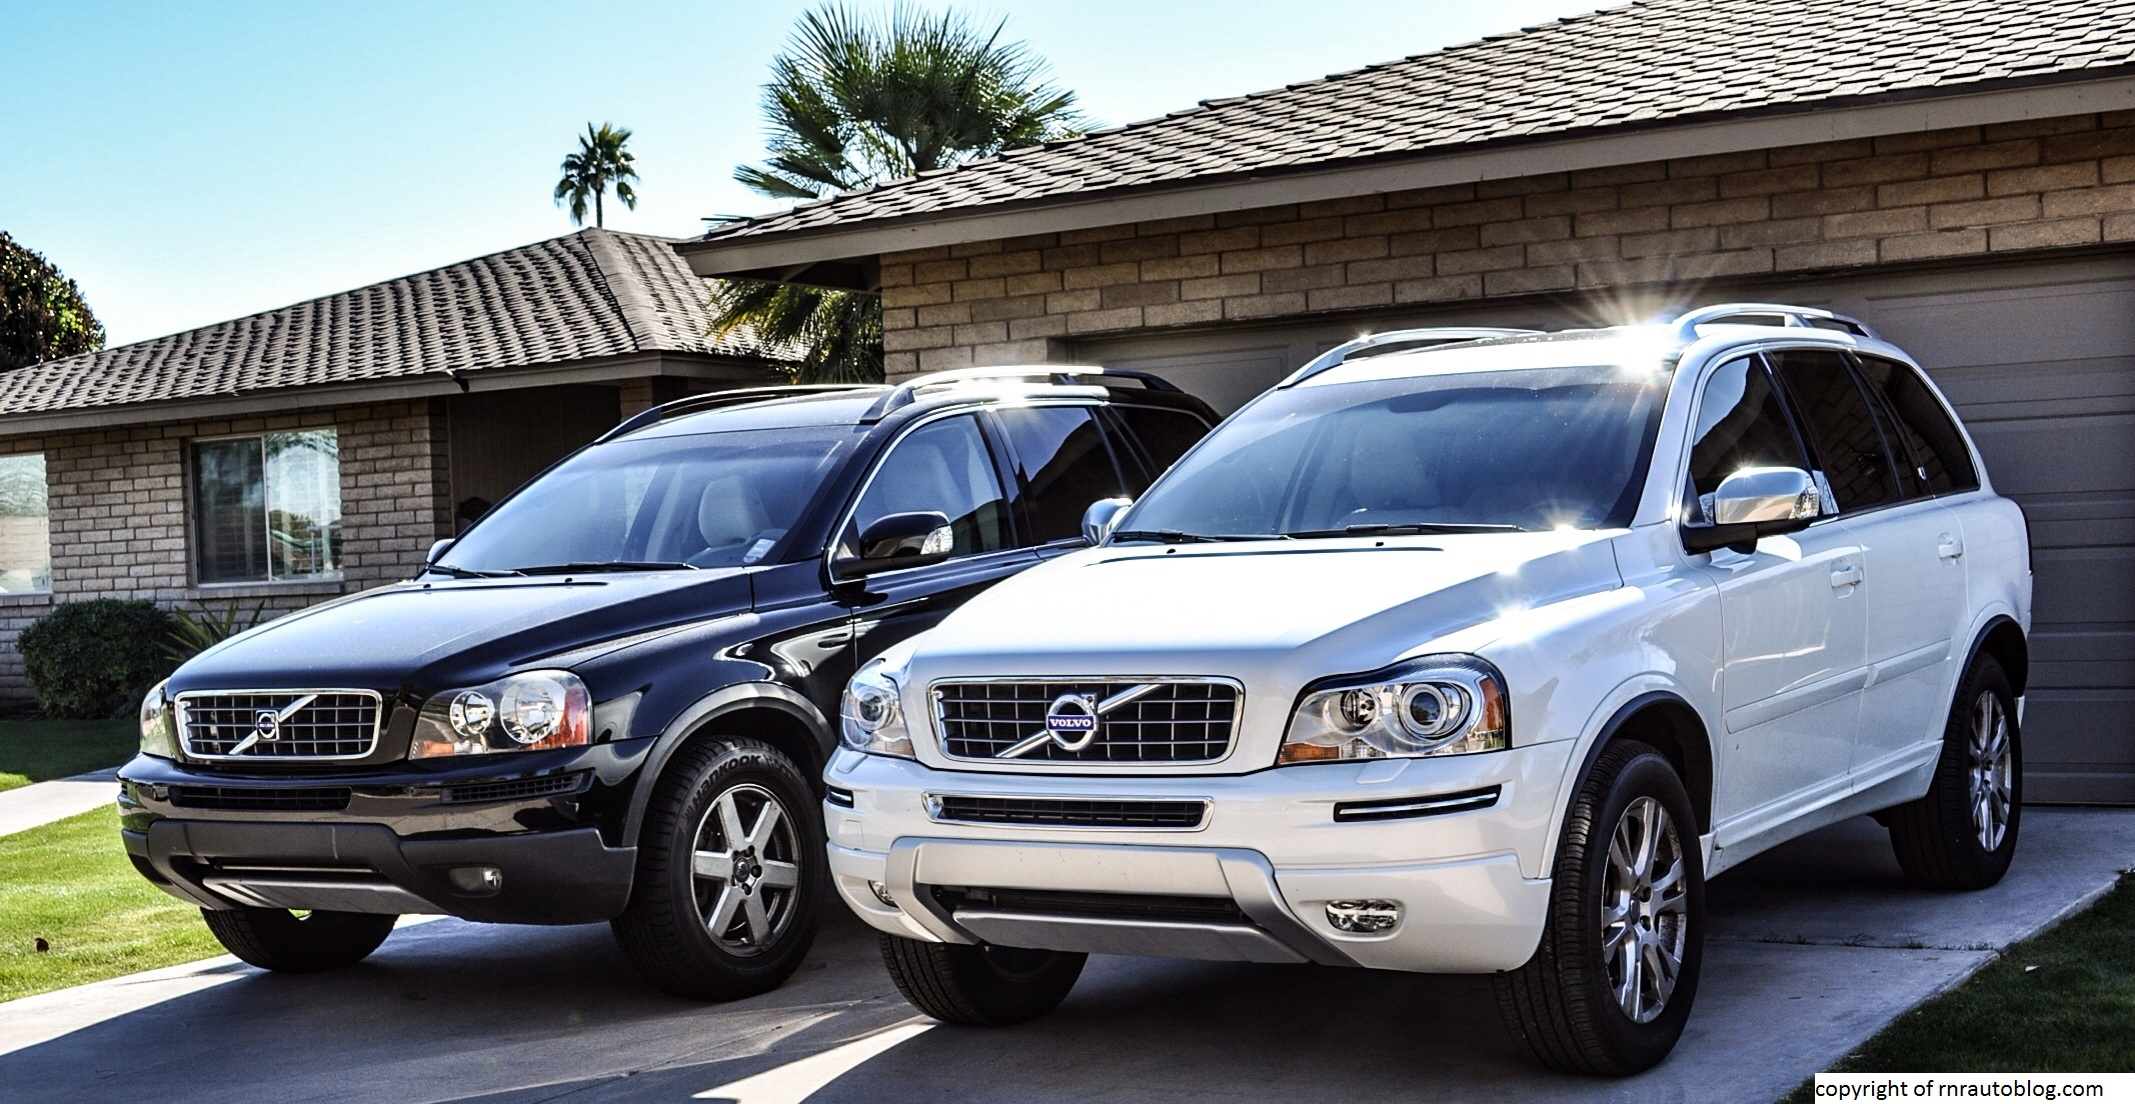 2007 Volvo Xc90 3 2 And 2014 Volvo Xc90 3 2 Premier Plus